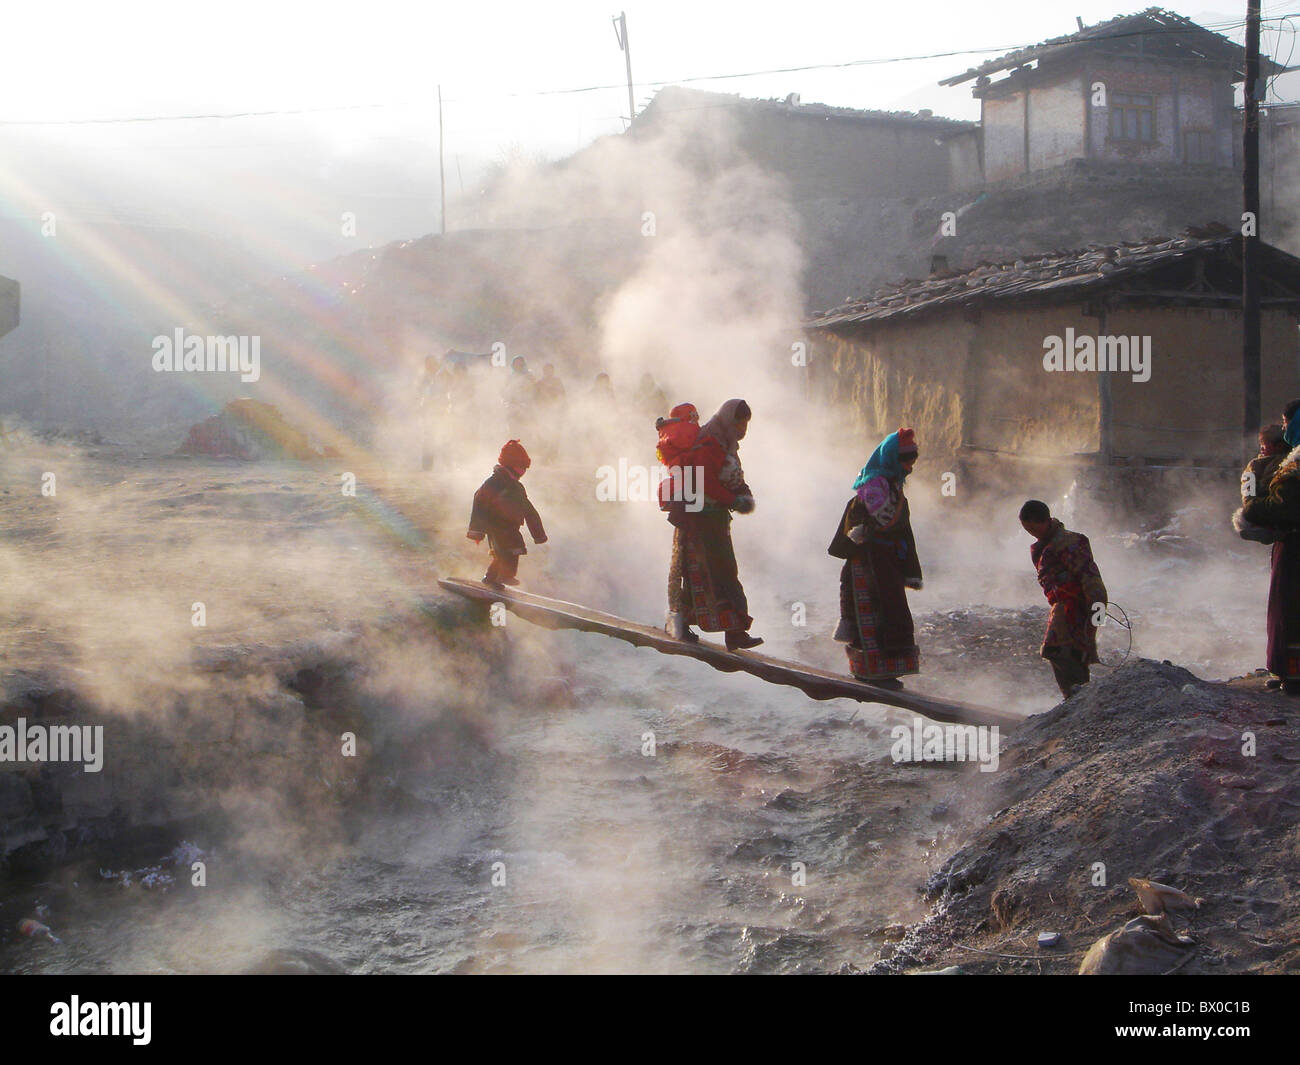 Tibetan people crossing the hot spring by a narrow wooden board, Langmu Monastery, Gannan, Gansu, China - Stock Image